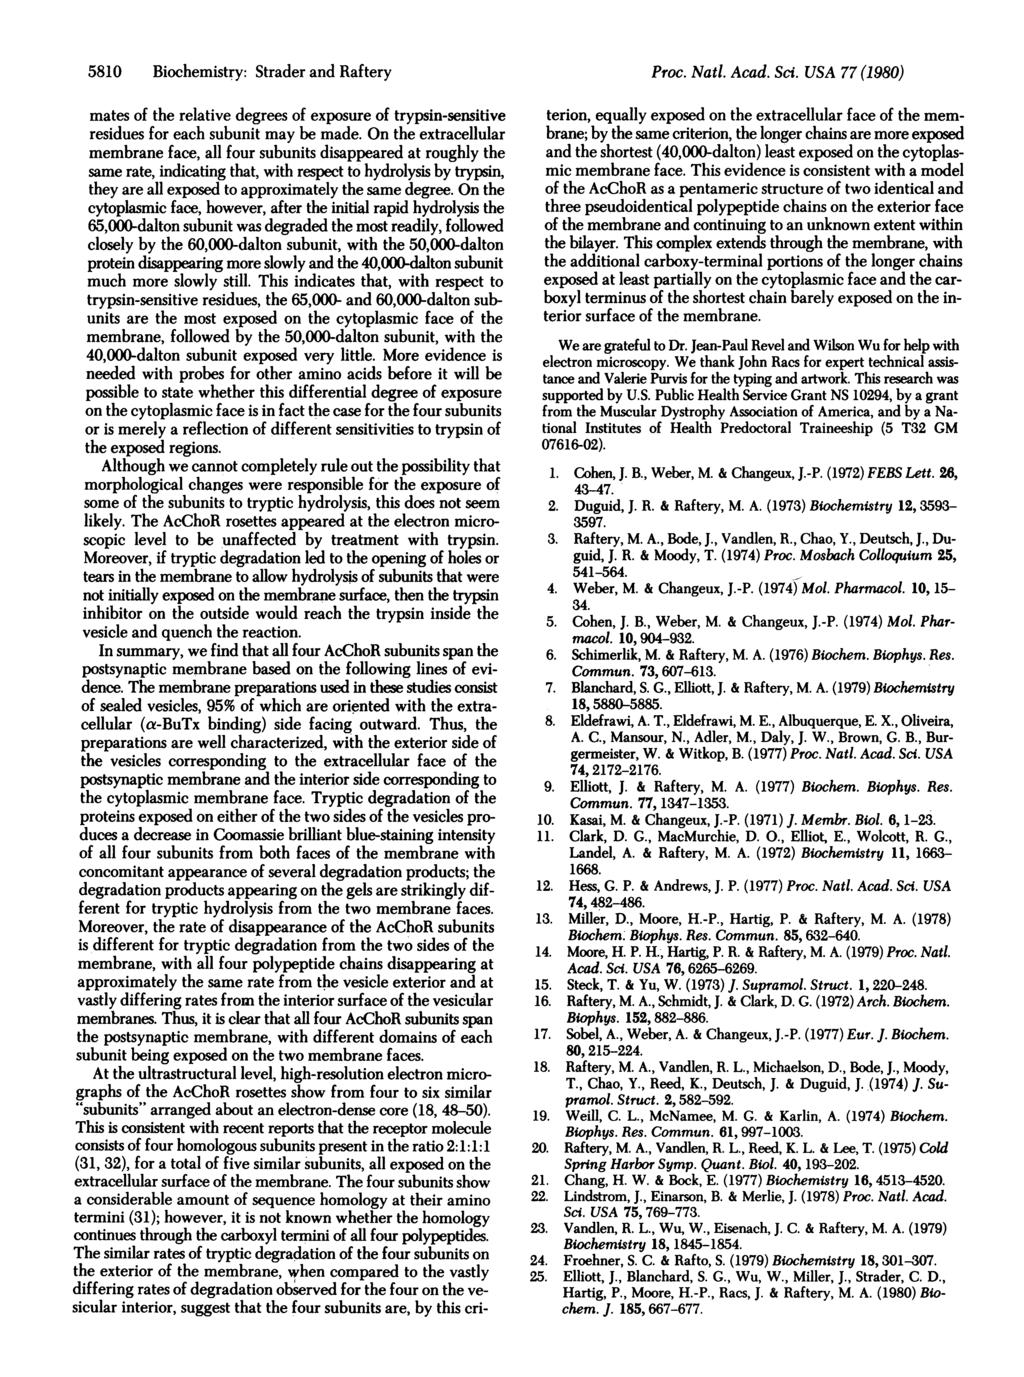 5810 Biochemistry: Strader and Raftery Proc. Natl. Acad. Sci. USA 77 (1980) mates of the relative degrees of exposure of trypsin-sensitive residues for each subunit may be made.